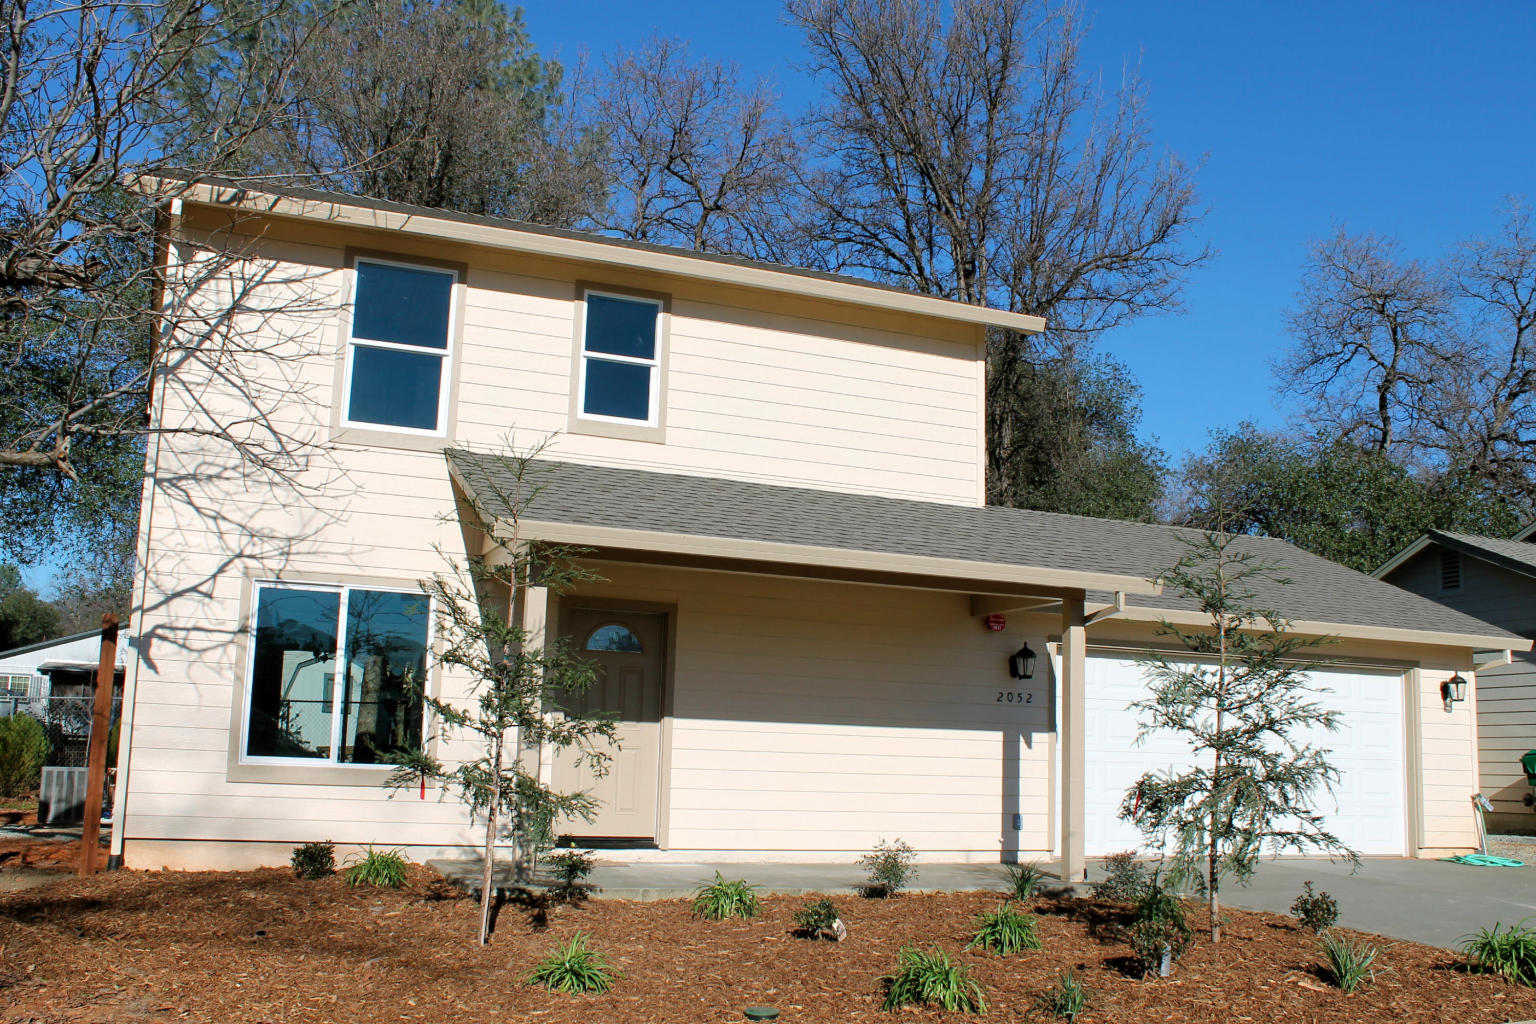 shasta lake, ca - official website - cappuccino court affordable homes